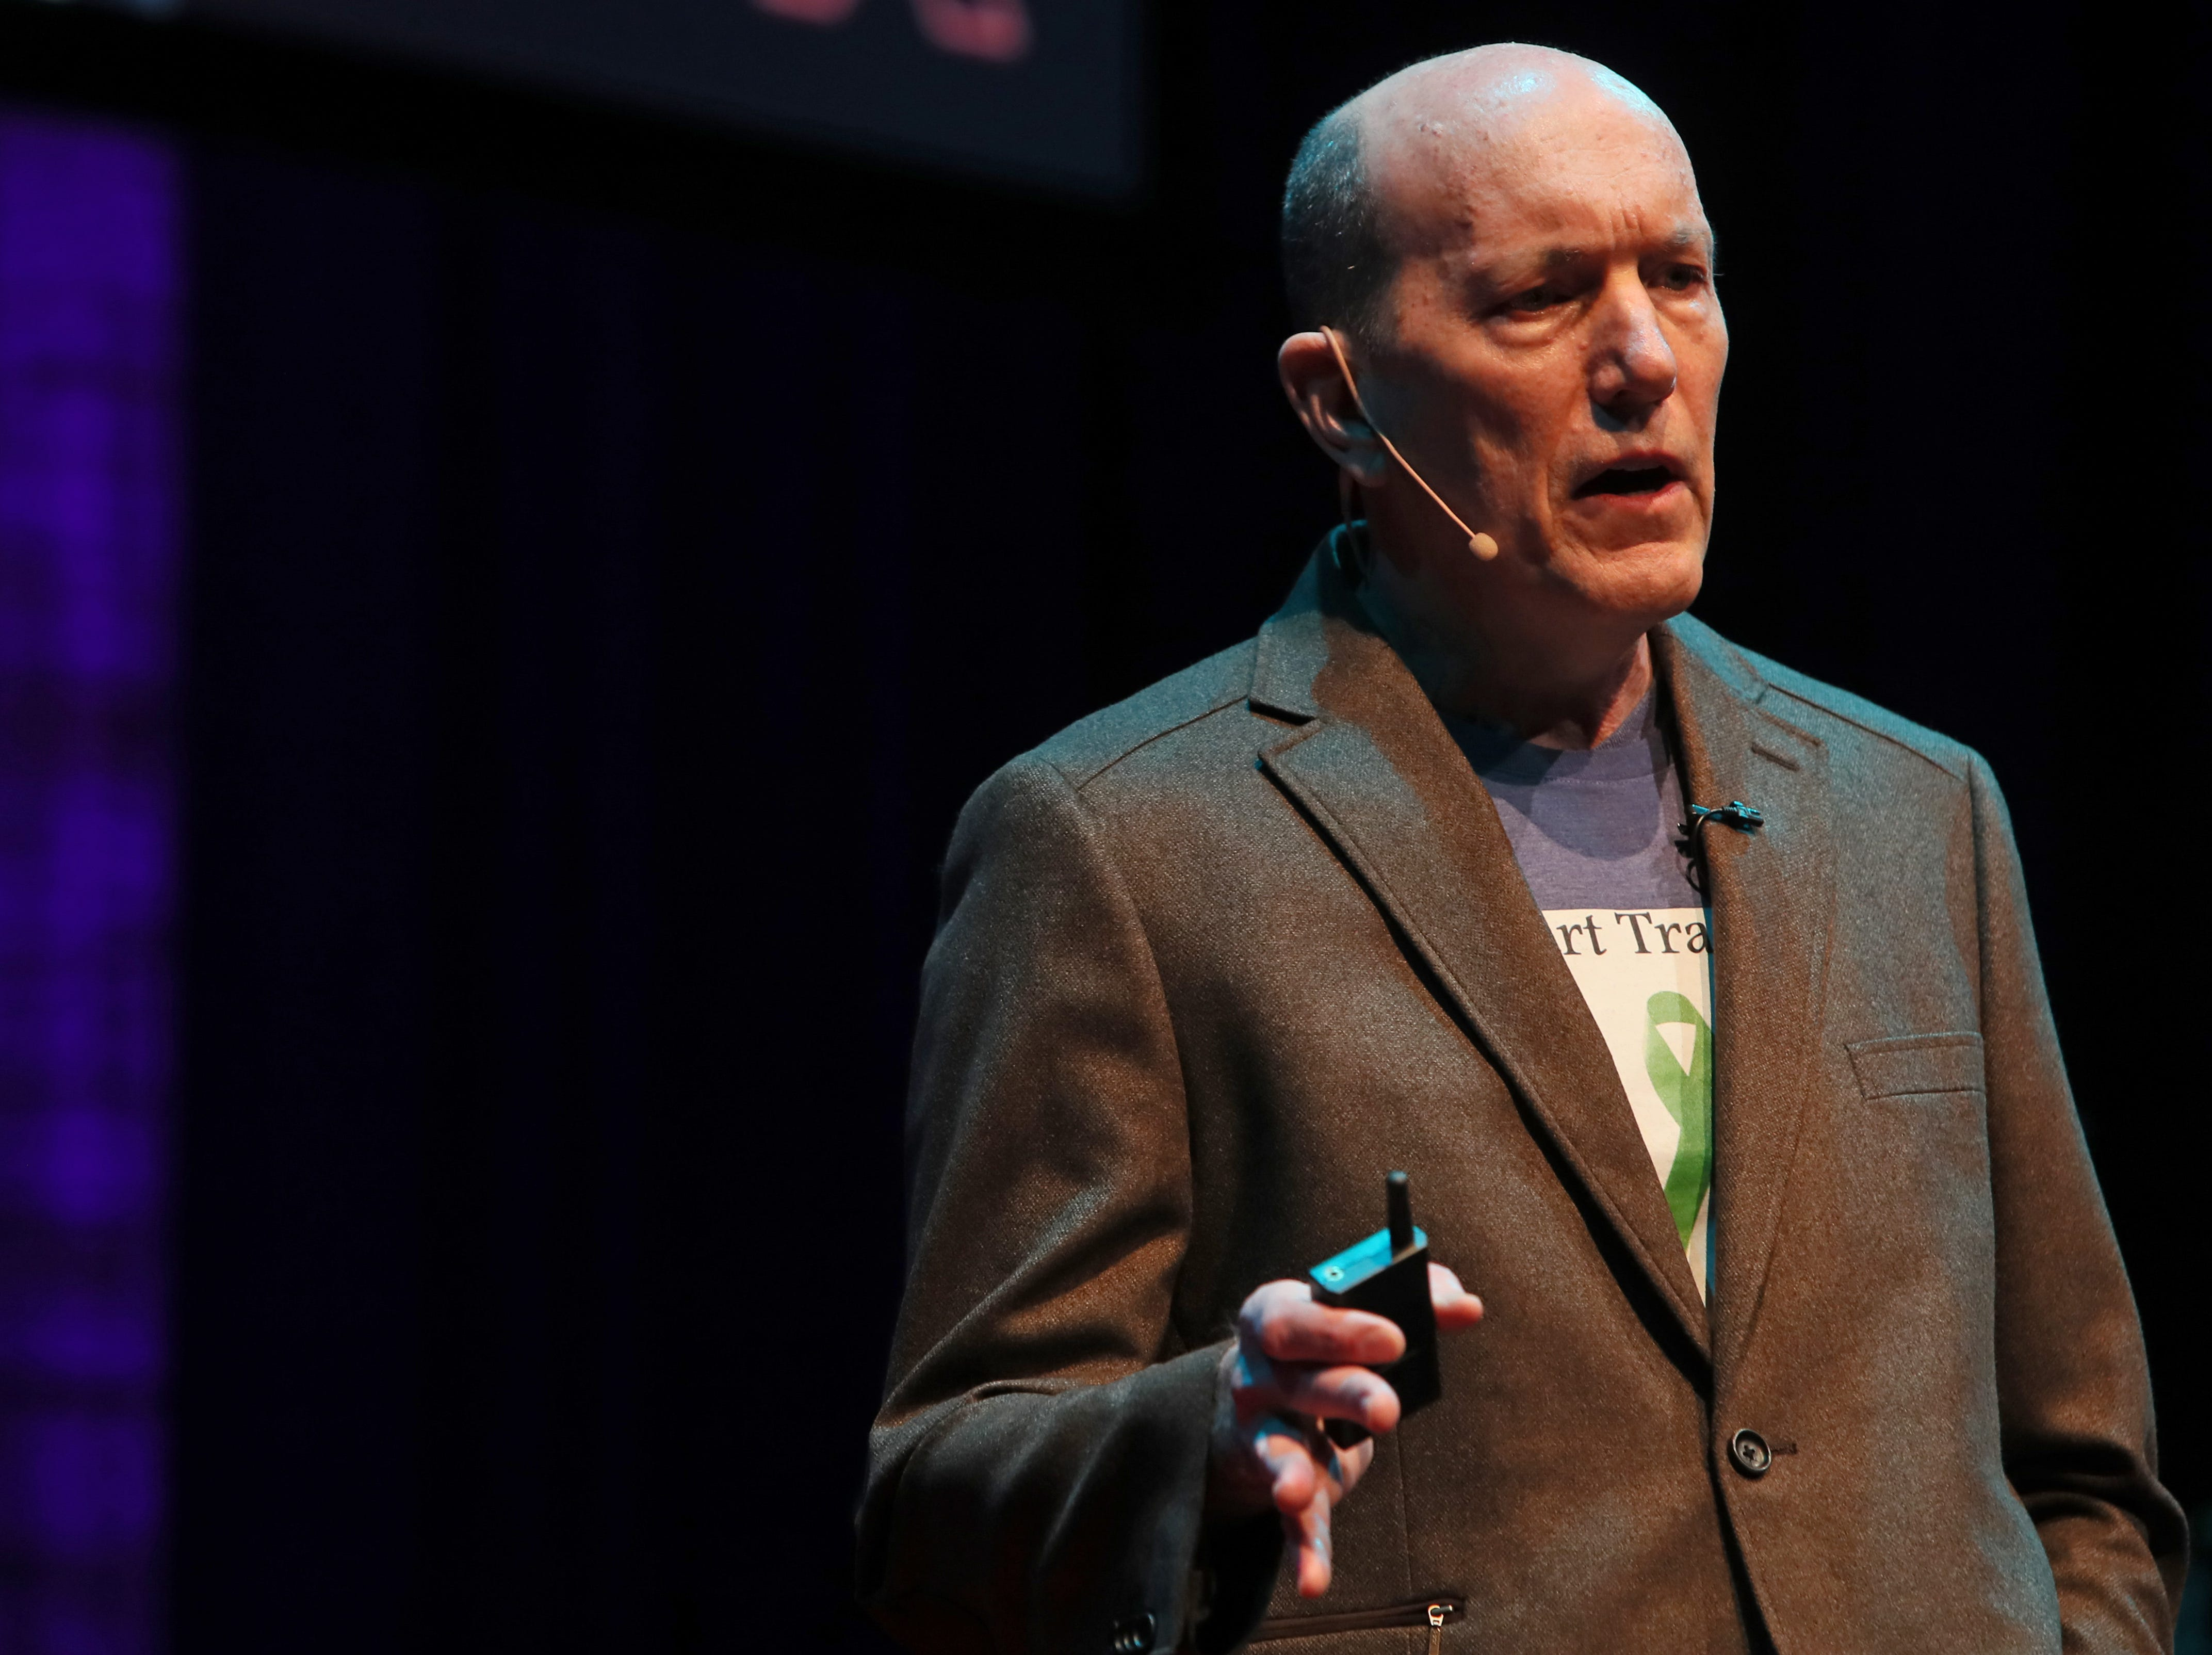 John Daniel speaks about life, loss and perseverance during a TEDx Memphis event at the Crosstown Arts Theatre Saturday, Feb. 2, 2019.